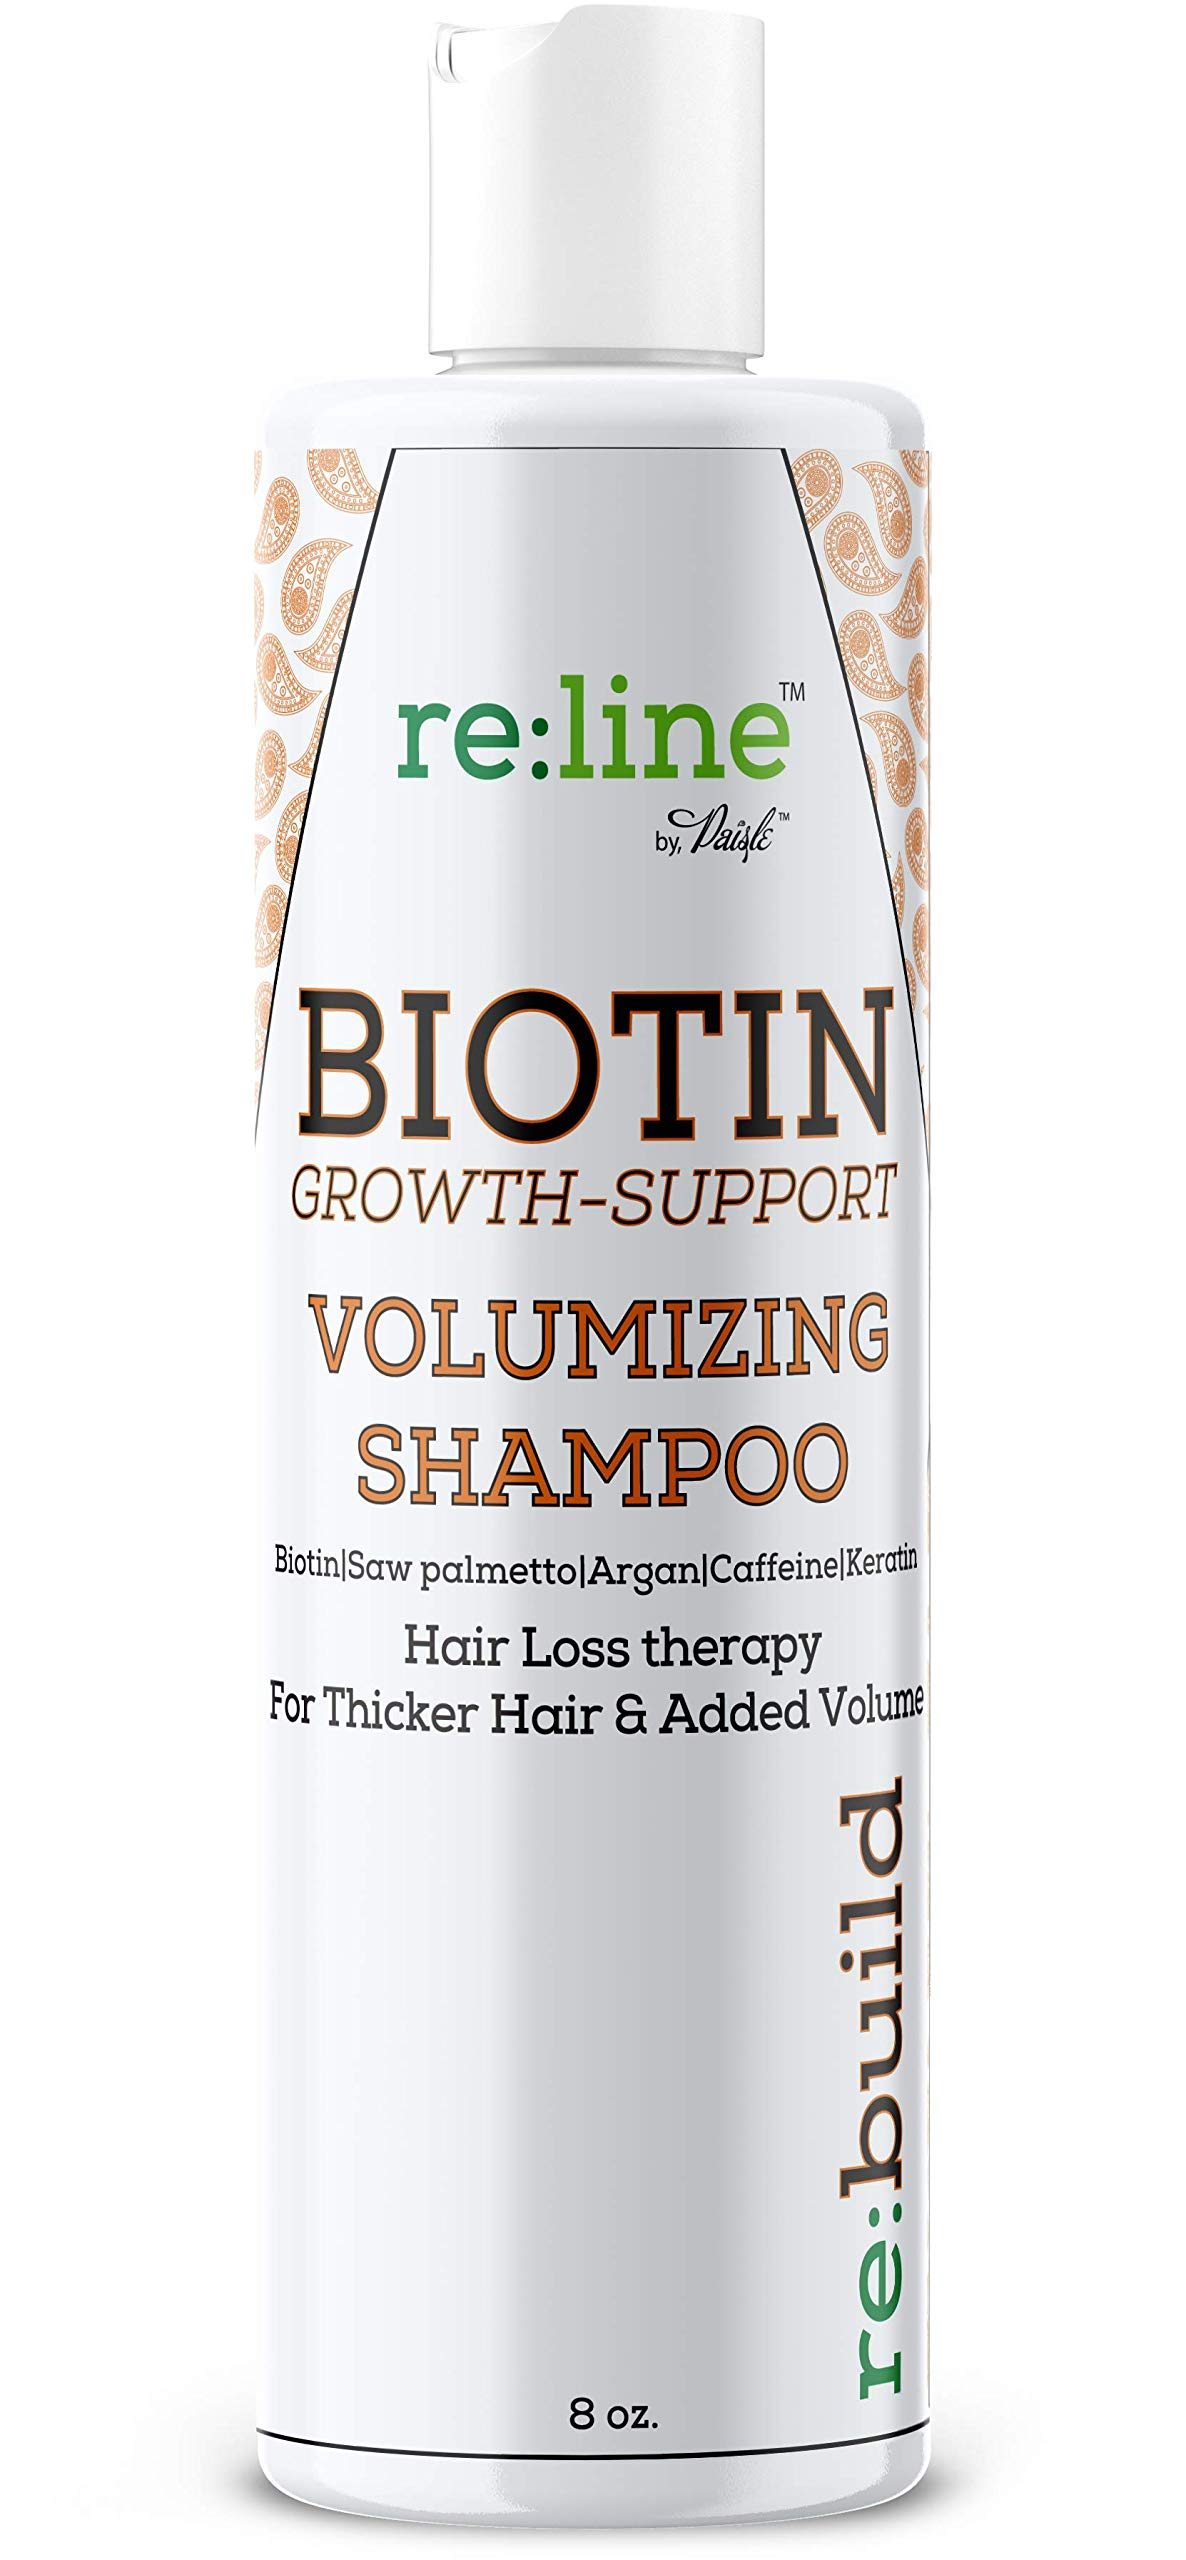 Volumizing Biotin Hair Loss Shampoo Volume Shampoo for Hair Growth All Natural Thickening for Thinning Hair Loss Treatment Sulfate Free for Color Treated Hair for Women & for Men by Paisle Botanics